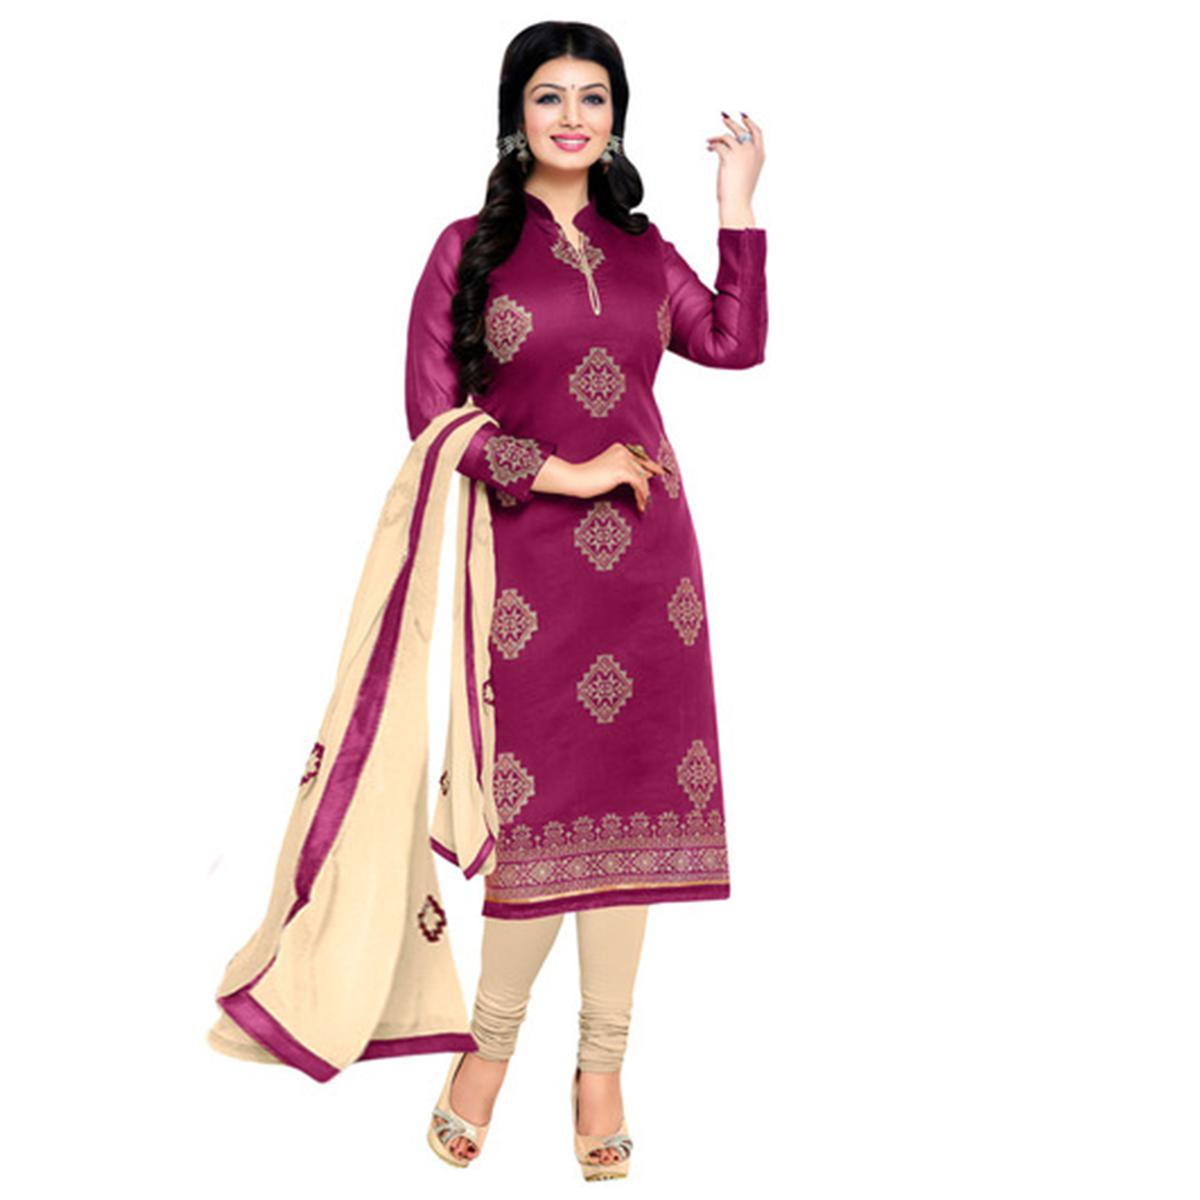 Dazzling Magenta and Cream Embroidered Semi Stitched Salwar Suit